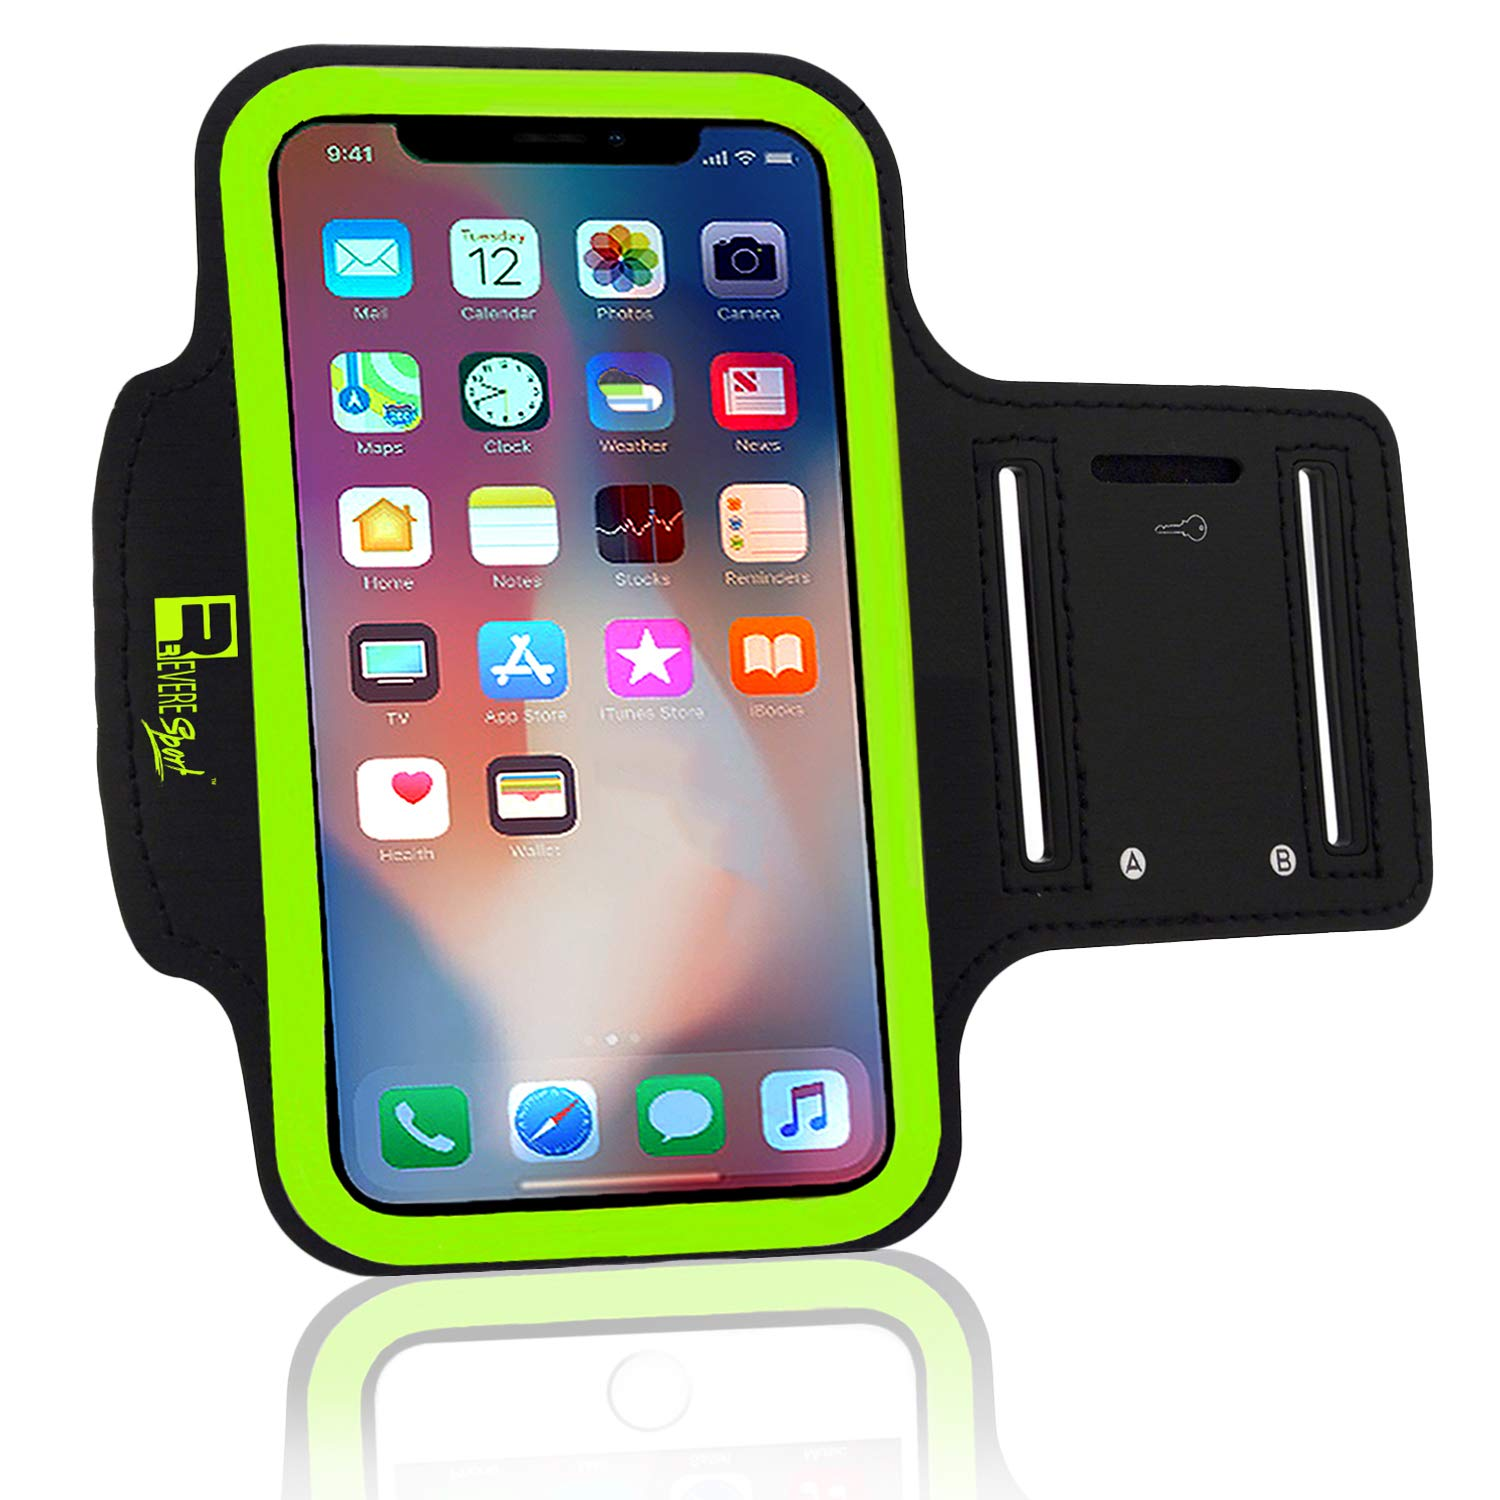 Efficient Sport Armband Running Flip Bag Case For 5 Inch Iphone Samsung Universal Smartphone Phone Earphone Holes Keys Arm Bags Pouch Outstanding Features Armbands Mobile Phone Accessories